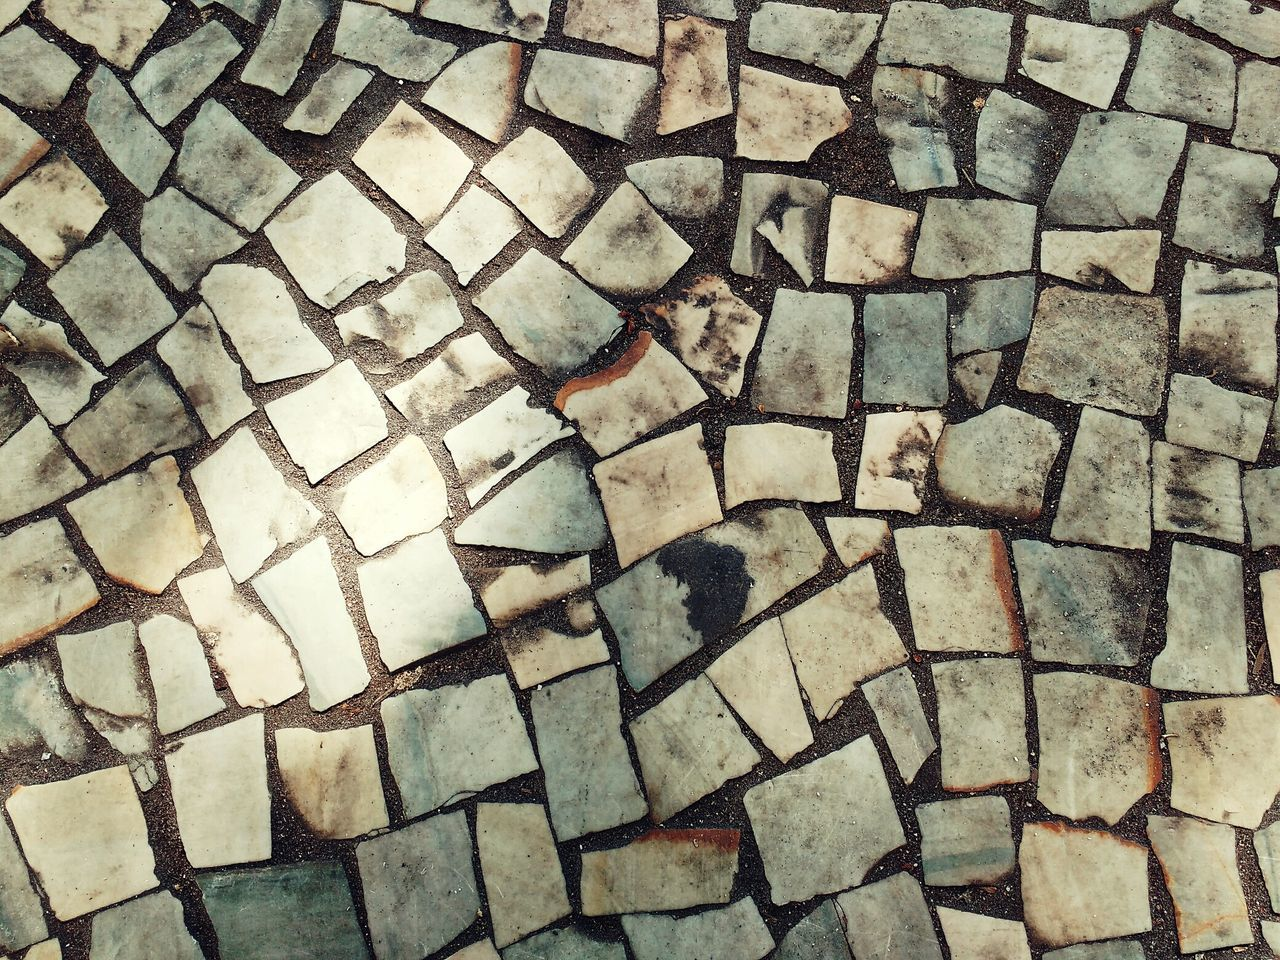 Full Frame Pattern Backgrounds High Angle View No People Outdoors Close-up Brick Street Cobblestone Cobble Stone Pavement Sidewalk Contrast Vintage Retro Stone Rough Texture Ground Man Made Floor Tiles City Alley